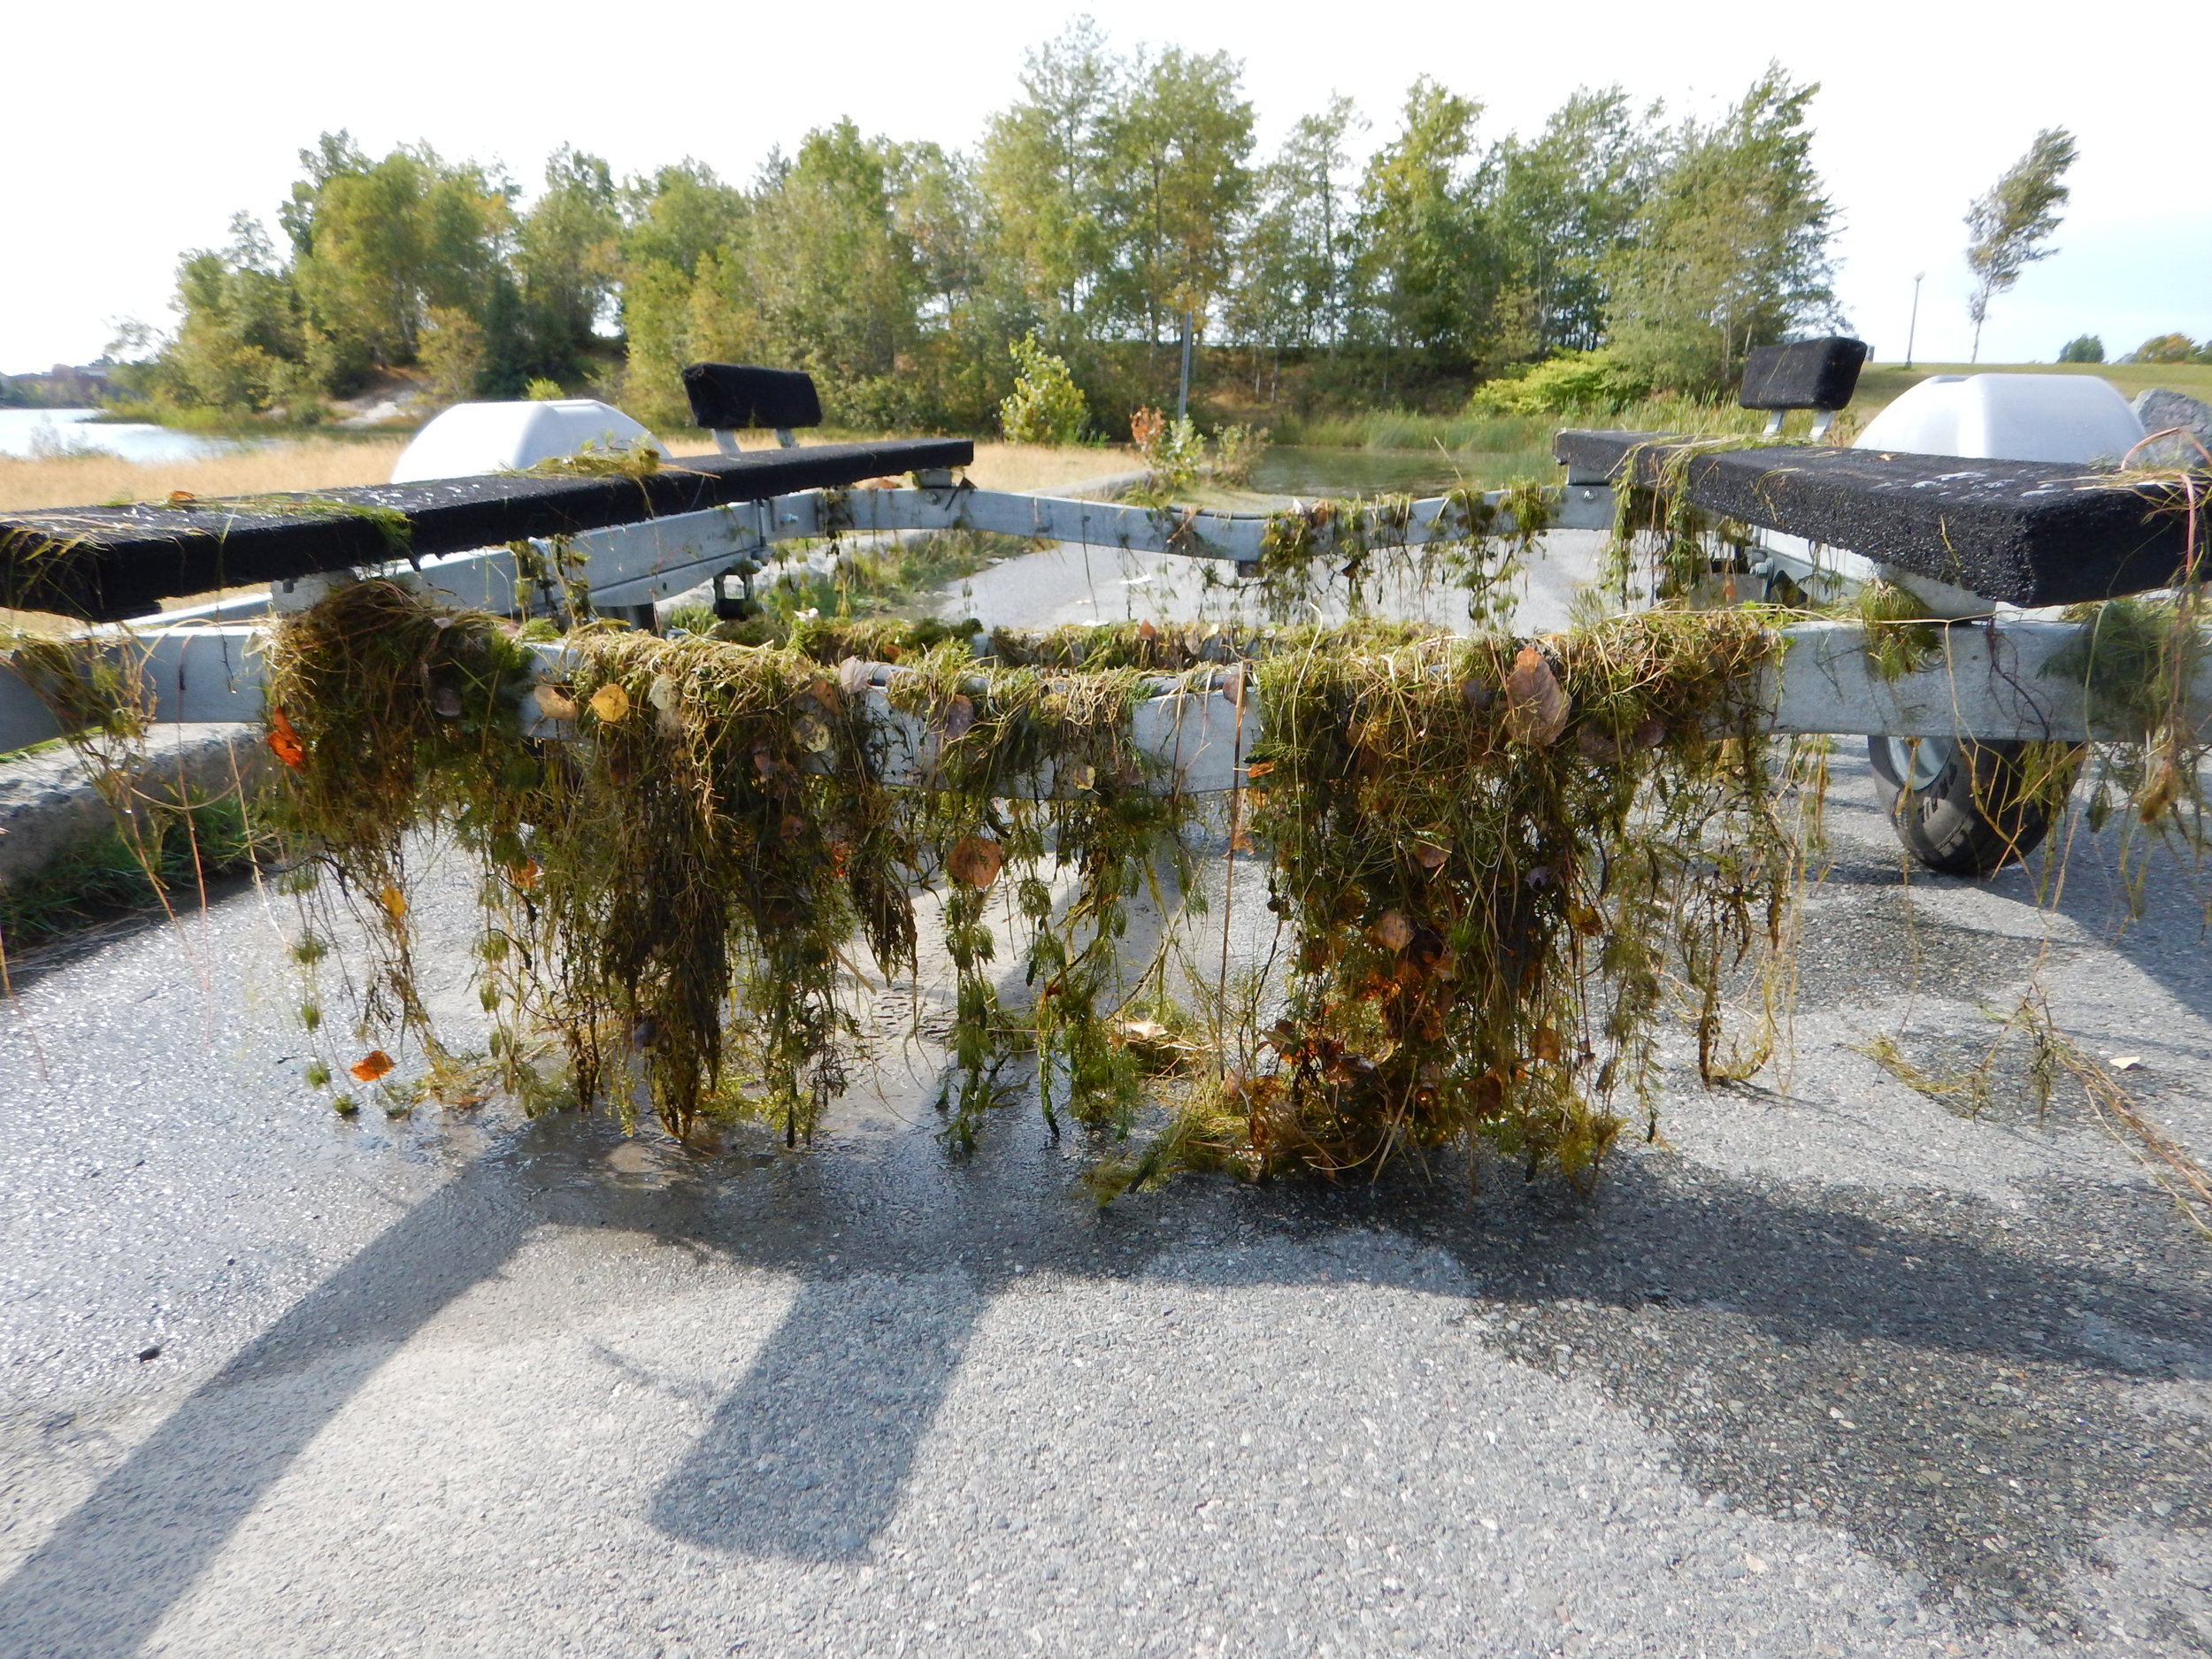 Trailer covered with eurasian water-milfoil at lake Osisko © Sophie Laliberté